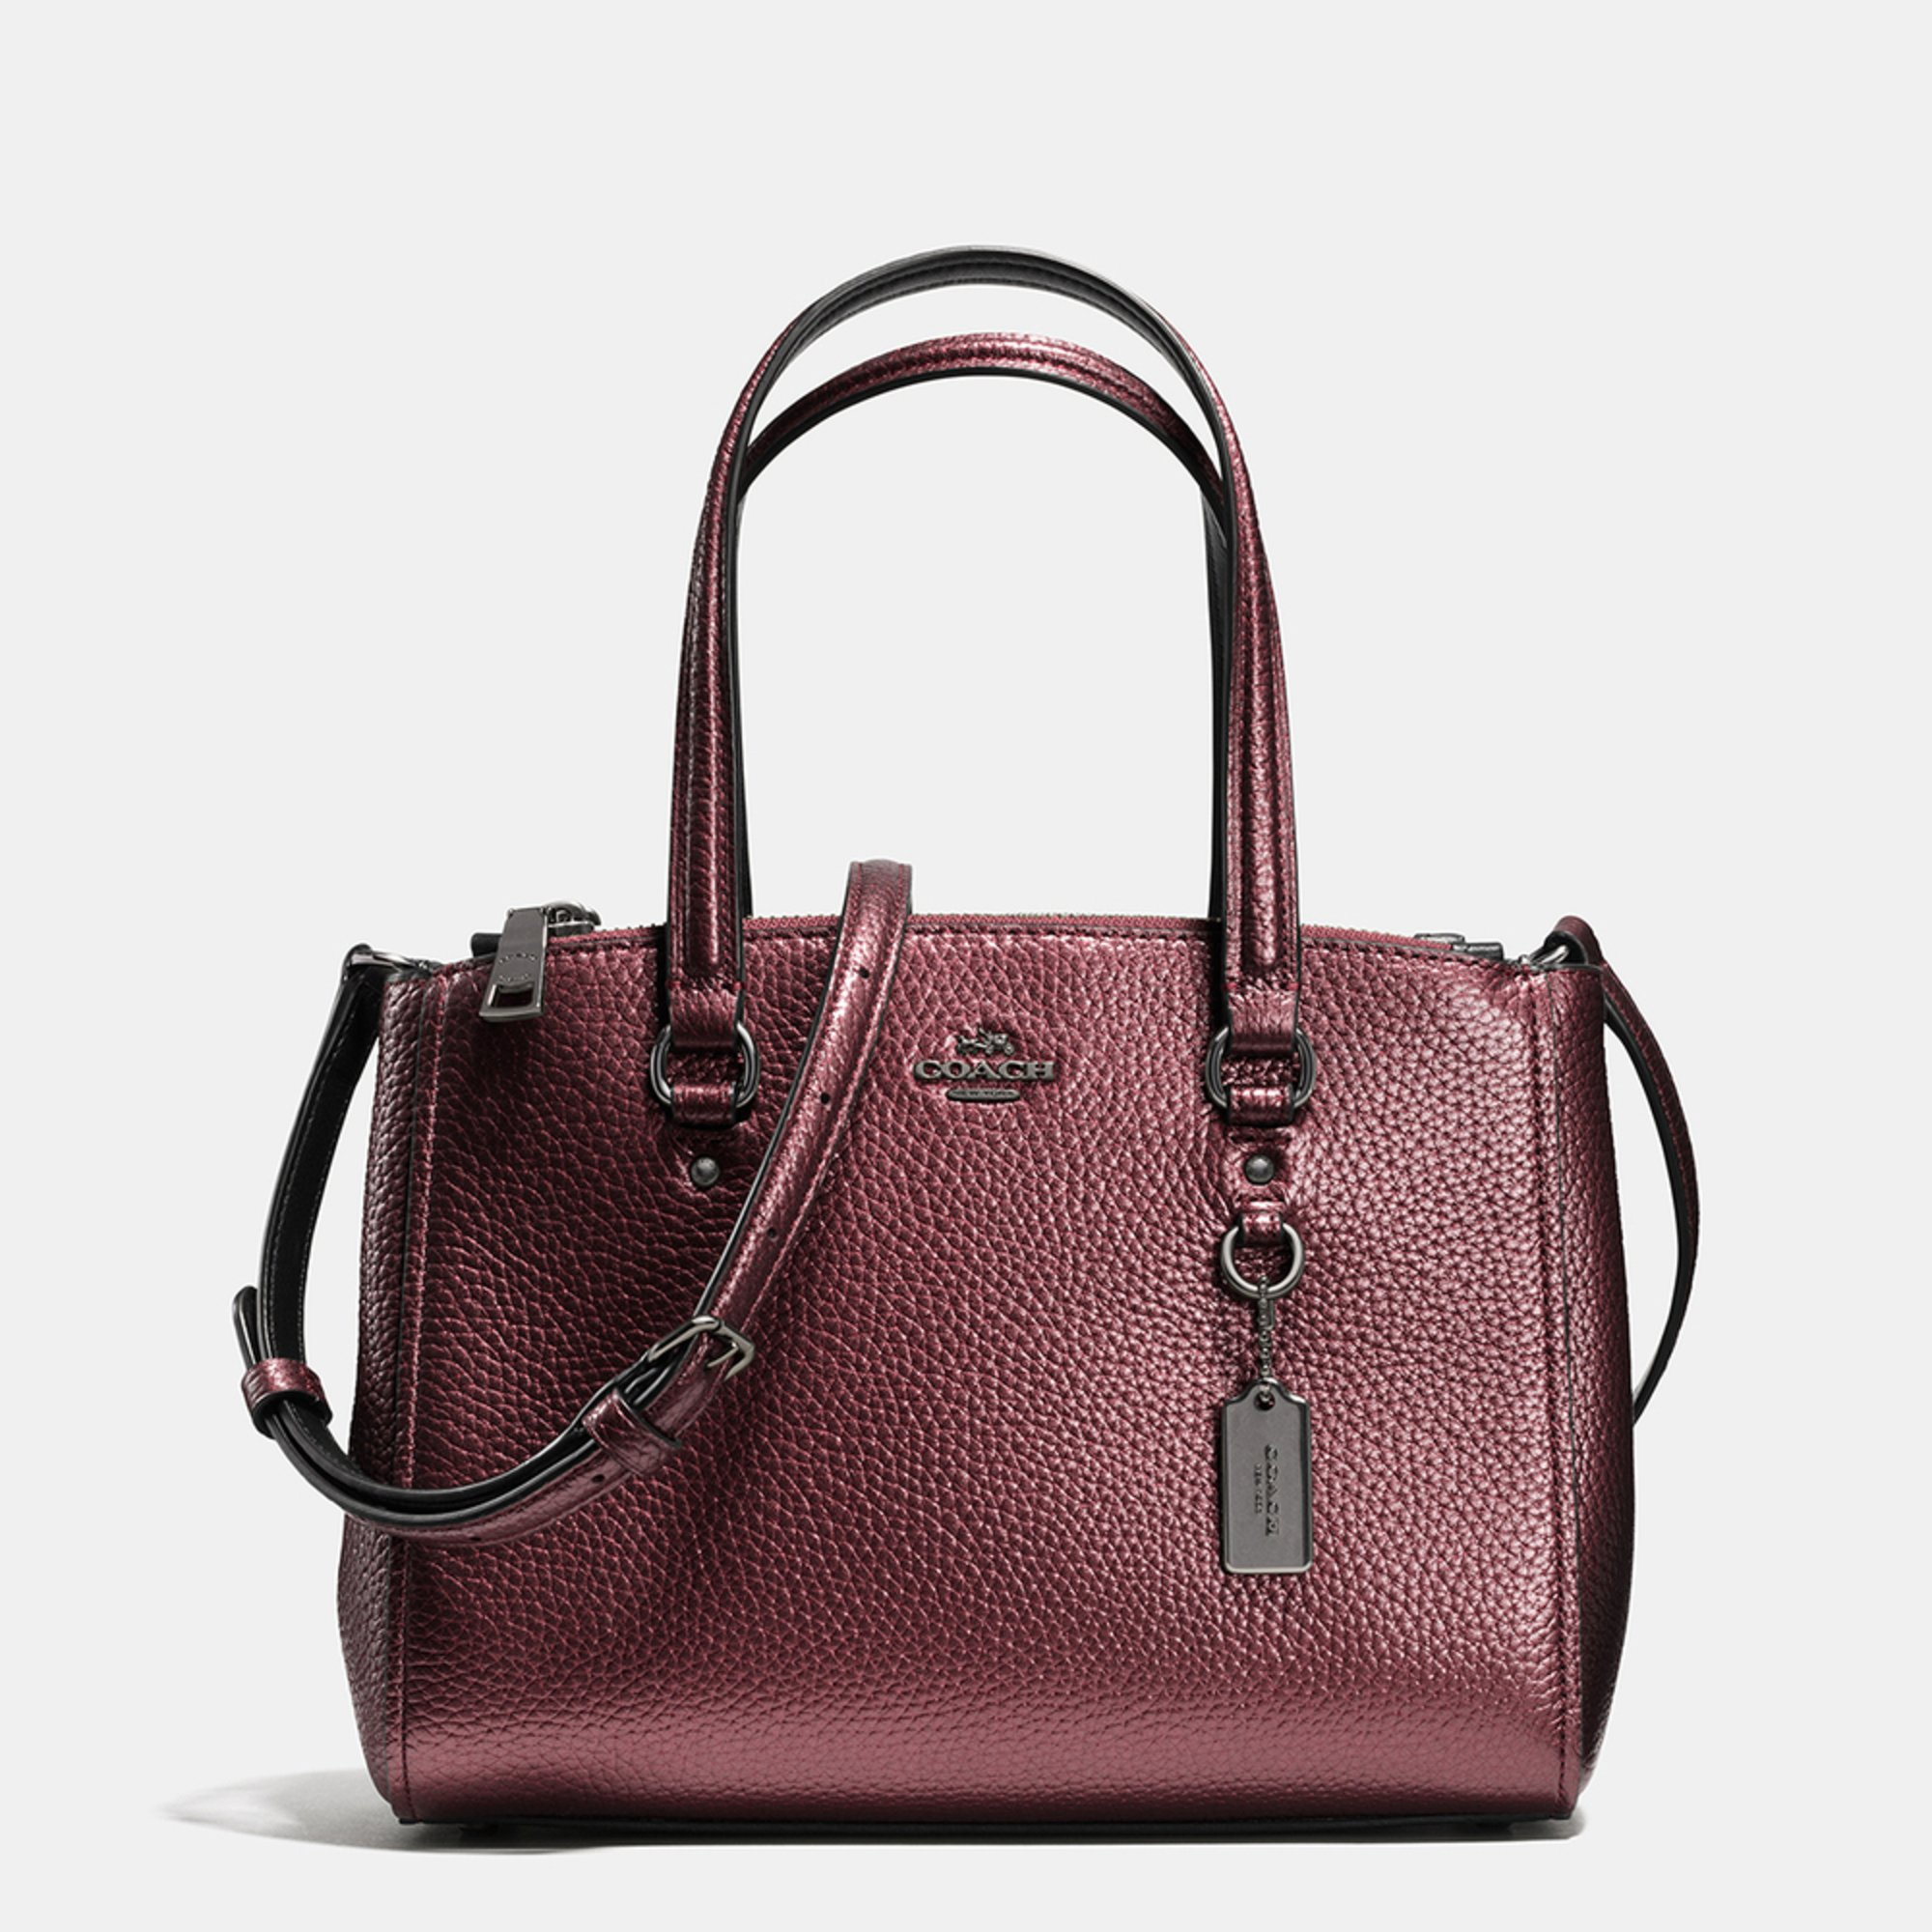 coach bag clearance outlet a2ge  coach bag clearance outlet